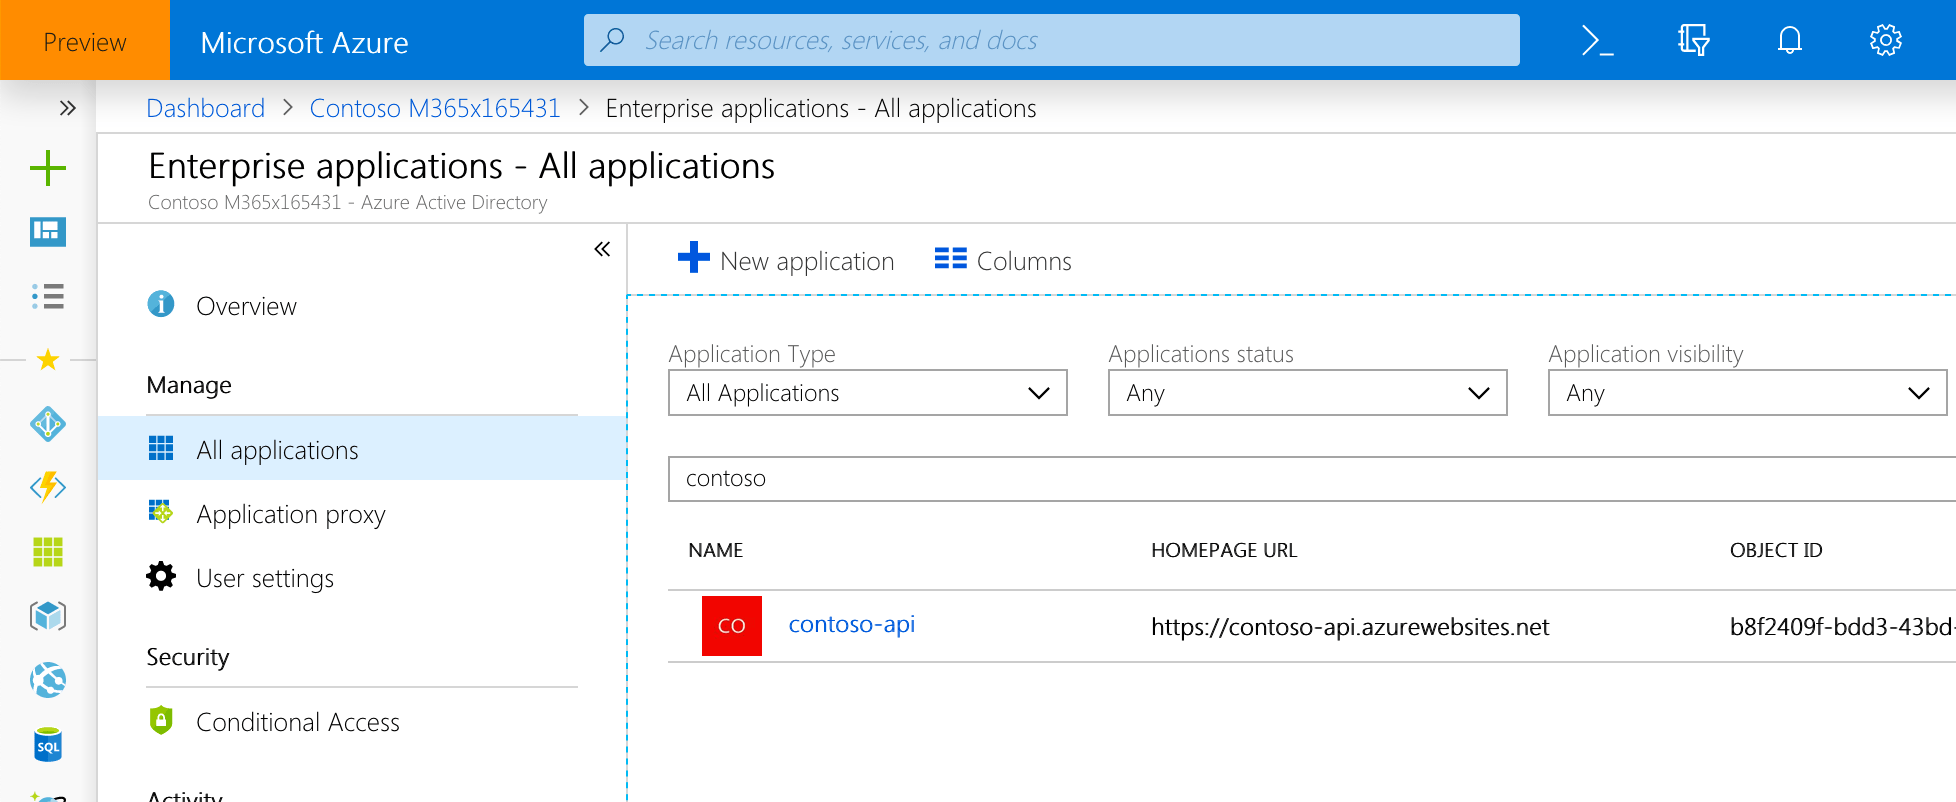 Azure AD application used to secure the API listed among Enterprise applications